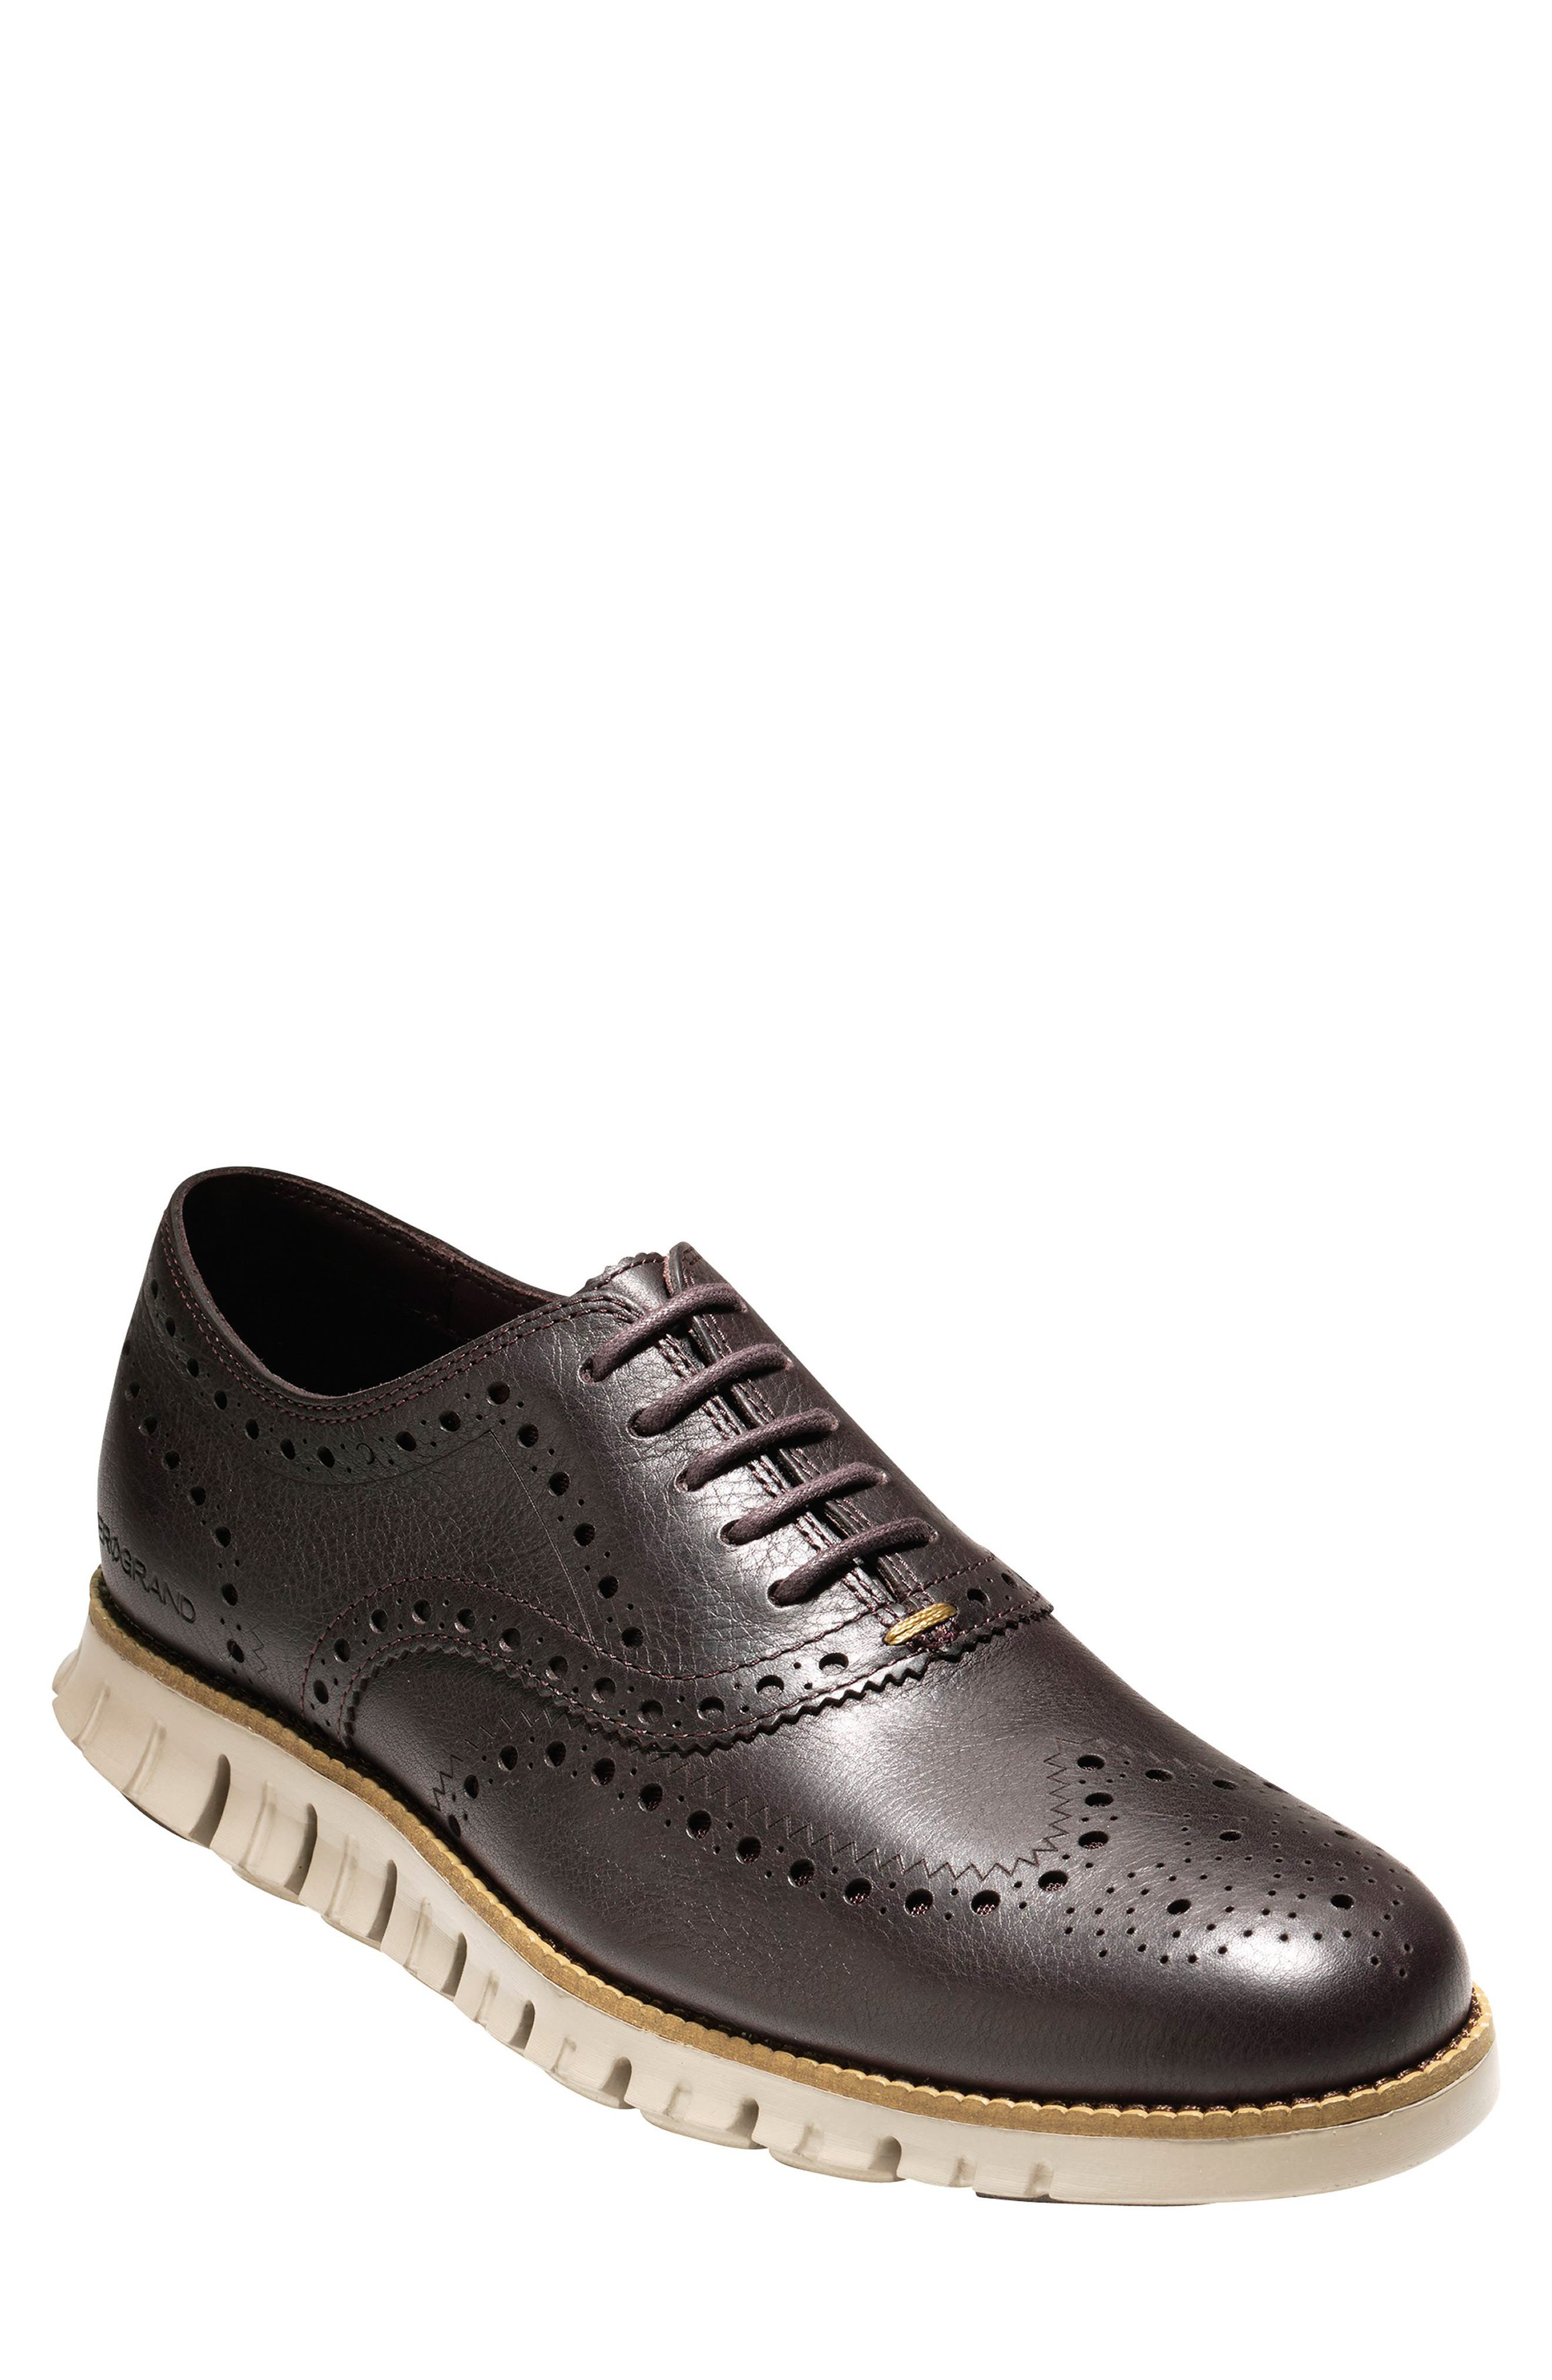 'ZeroGrand' Wingtip Oxford, Main, color, JAVA LEATHER